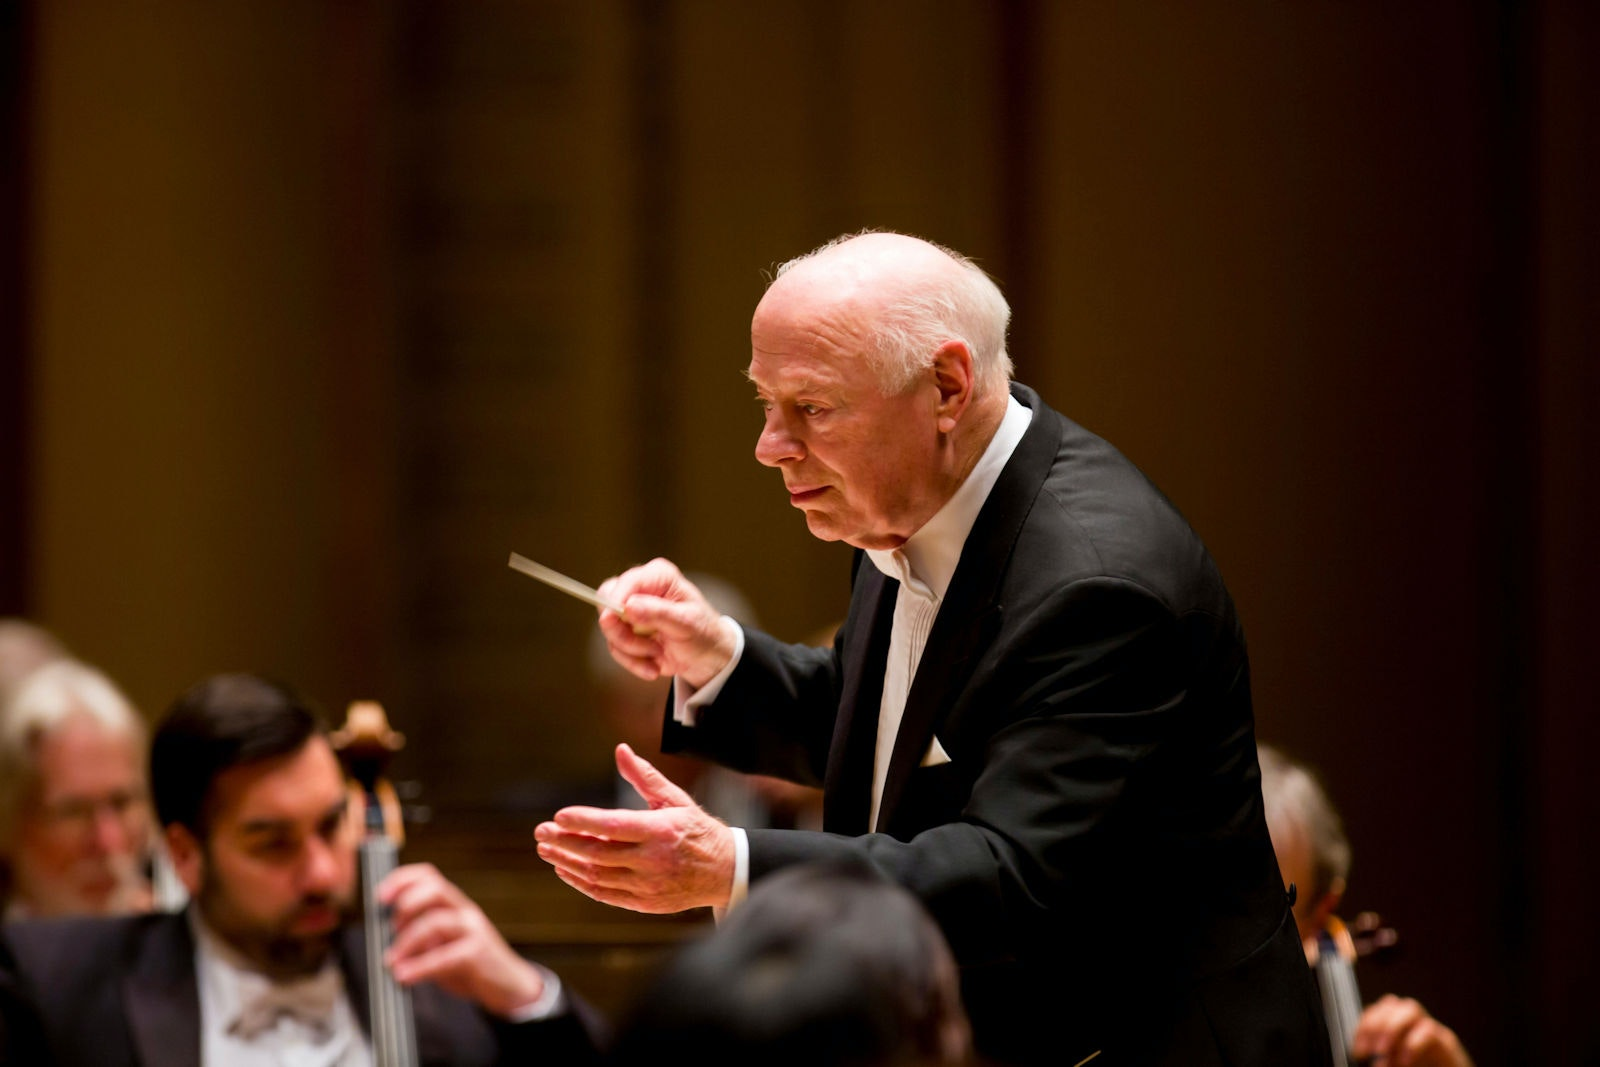 Bernard Haitink conducts Mozart and Bruckner – With Till Fellner